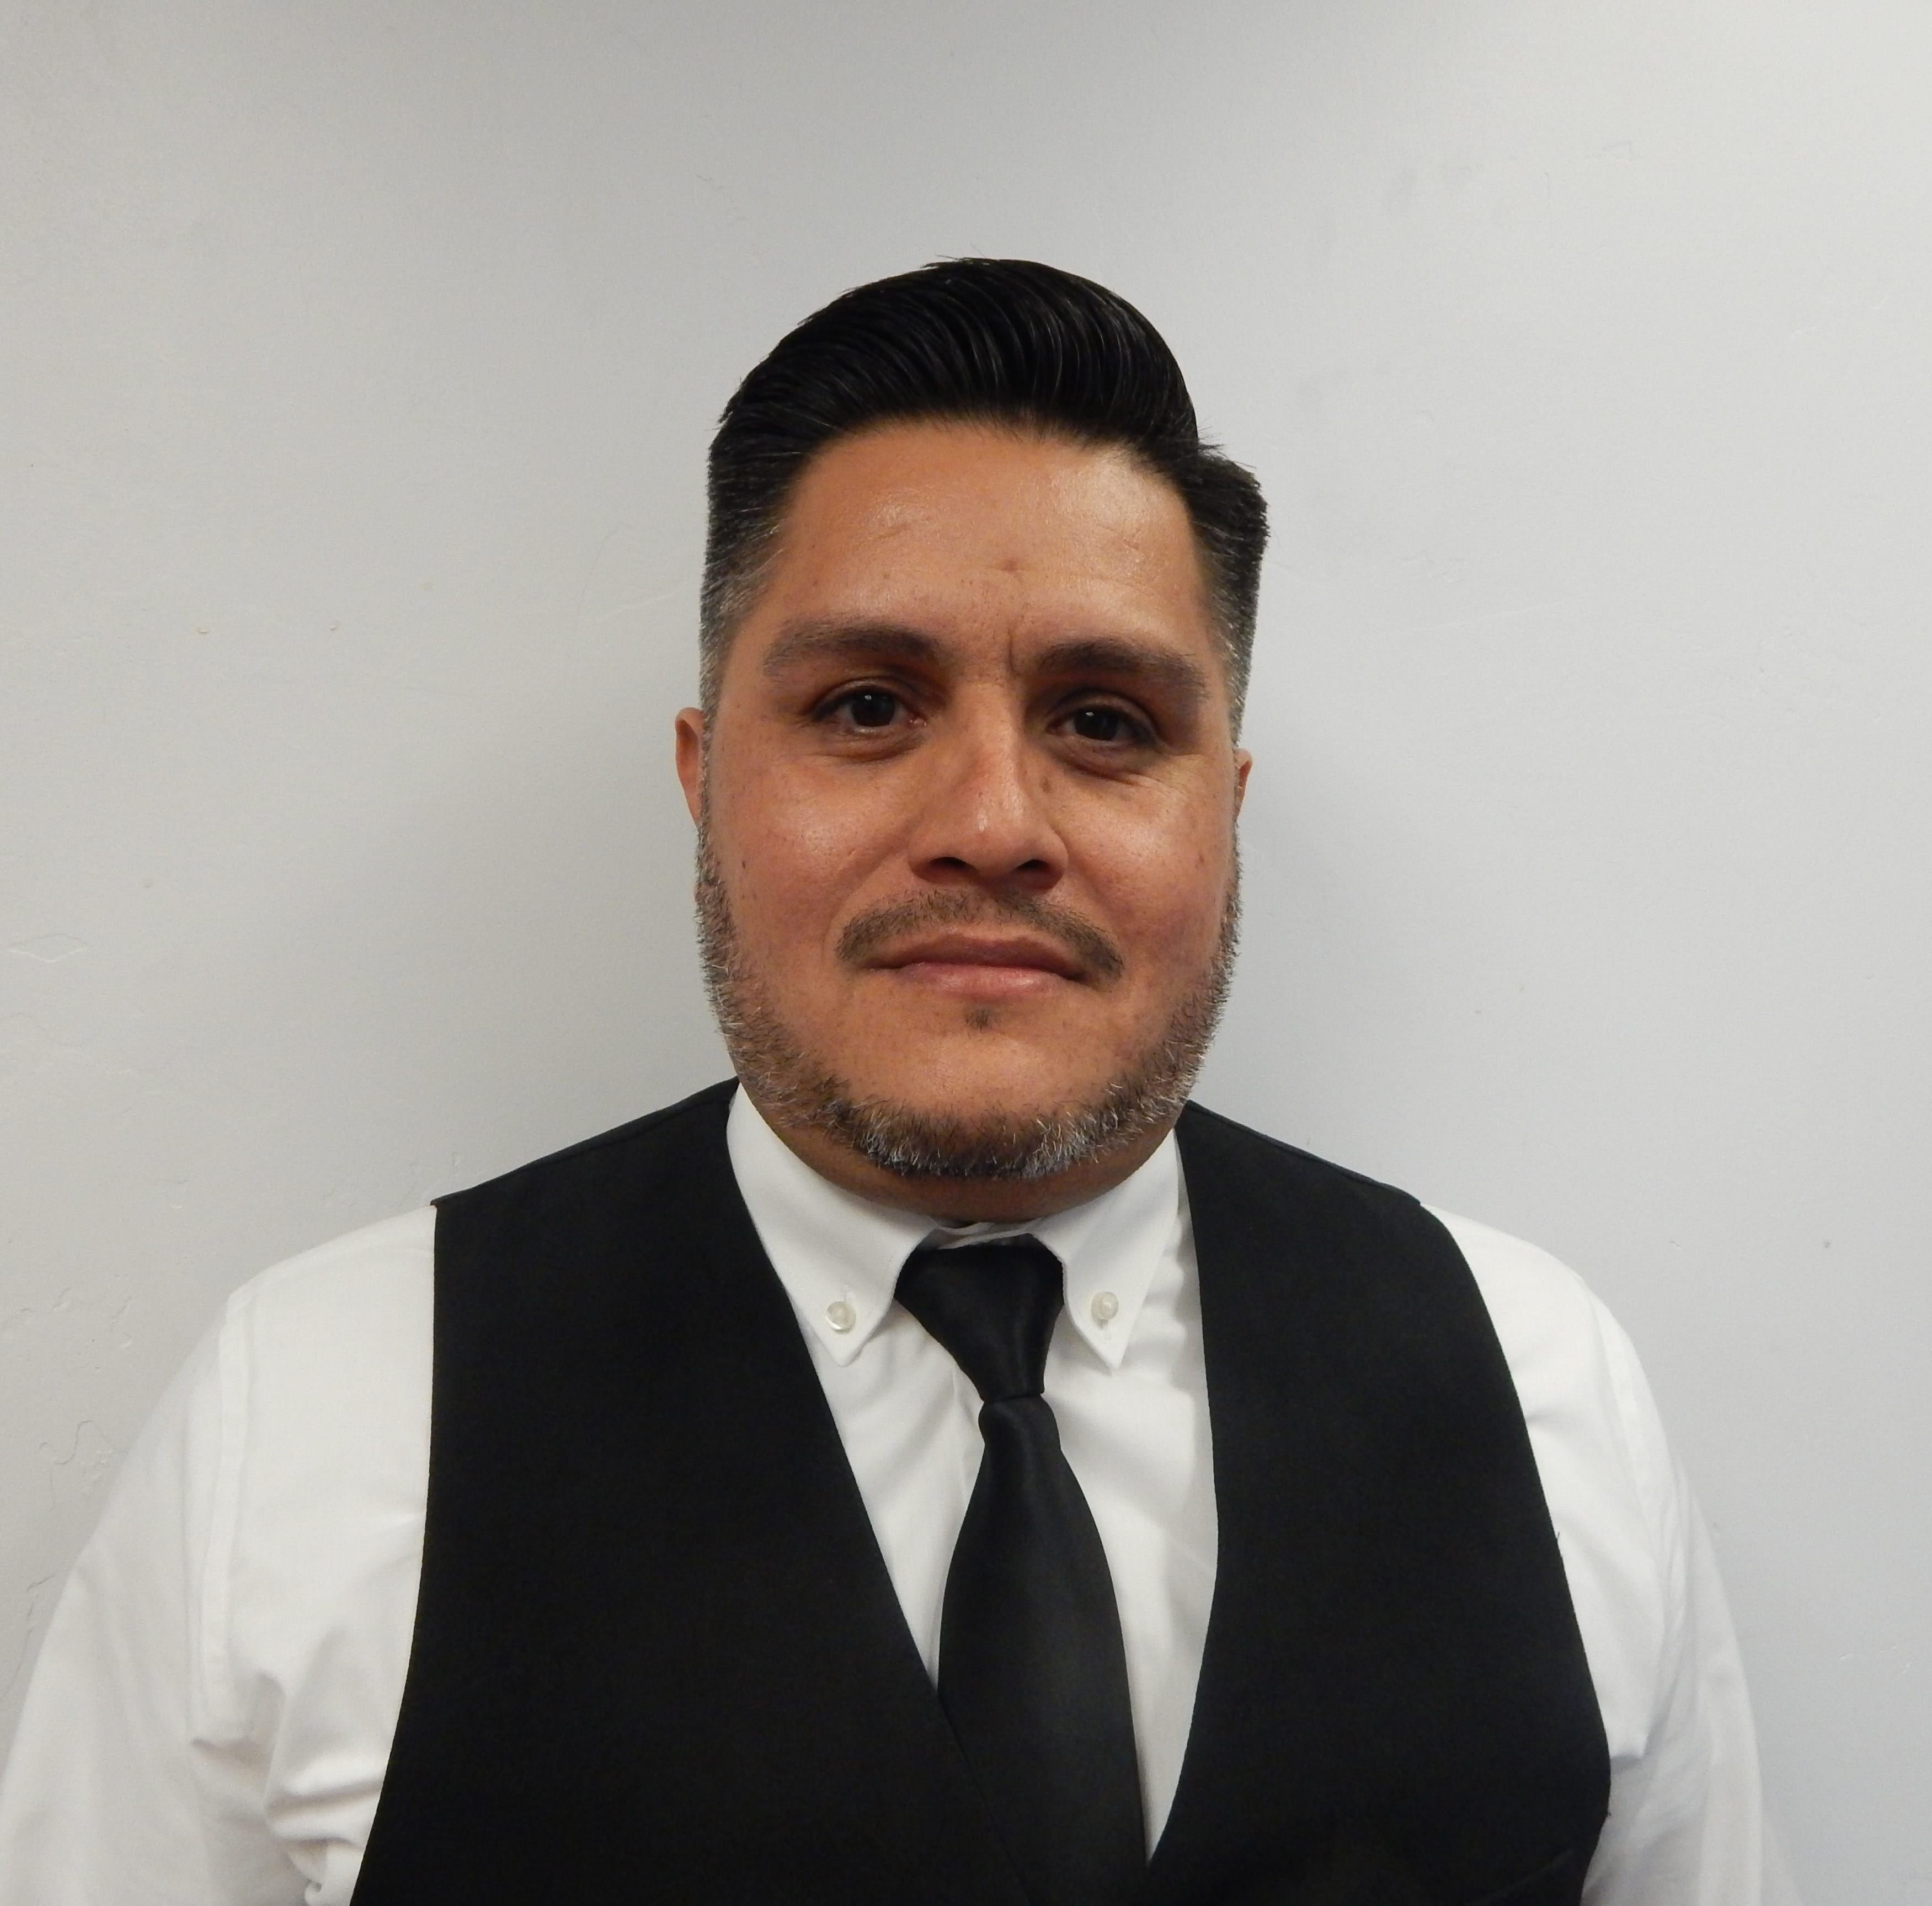 Michael Padilla named star employee by Double Eagle Restaurant